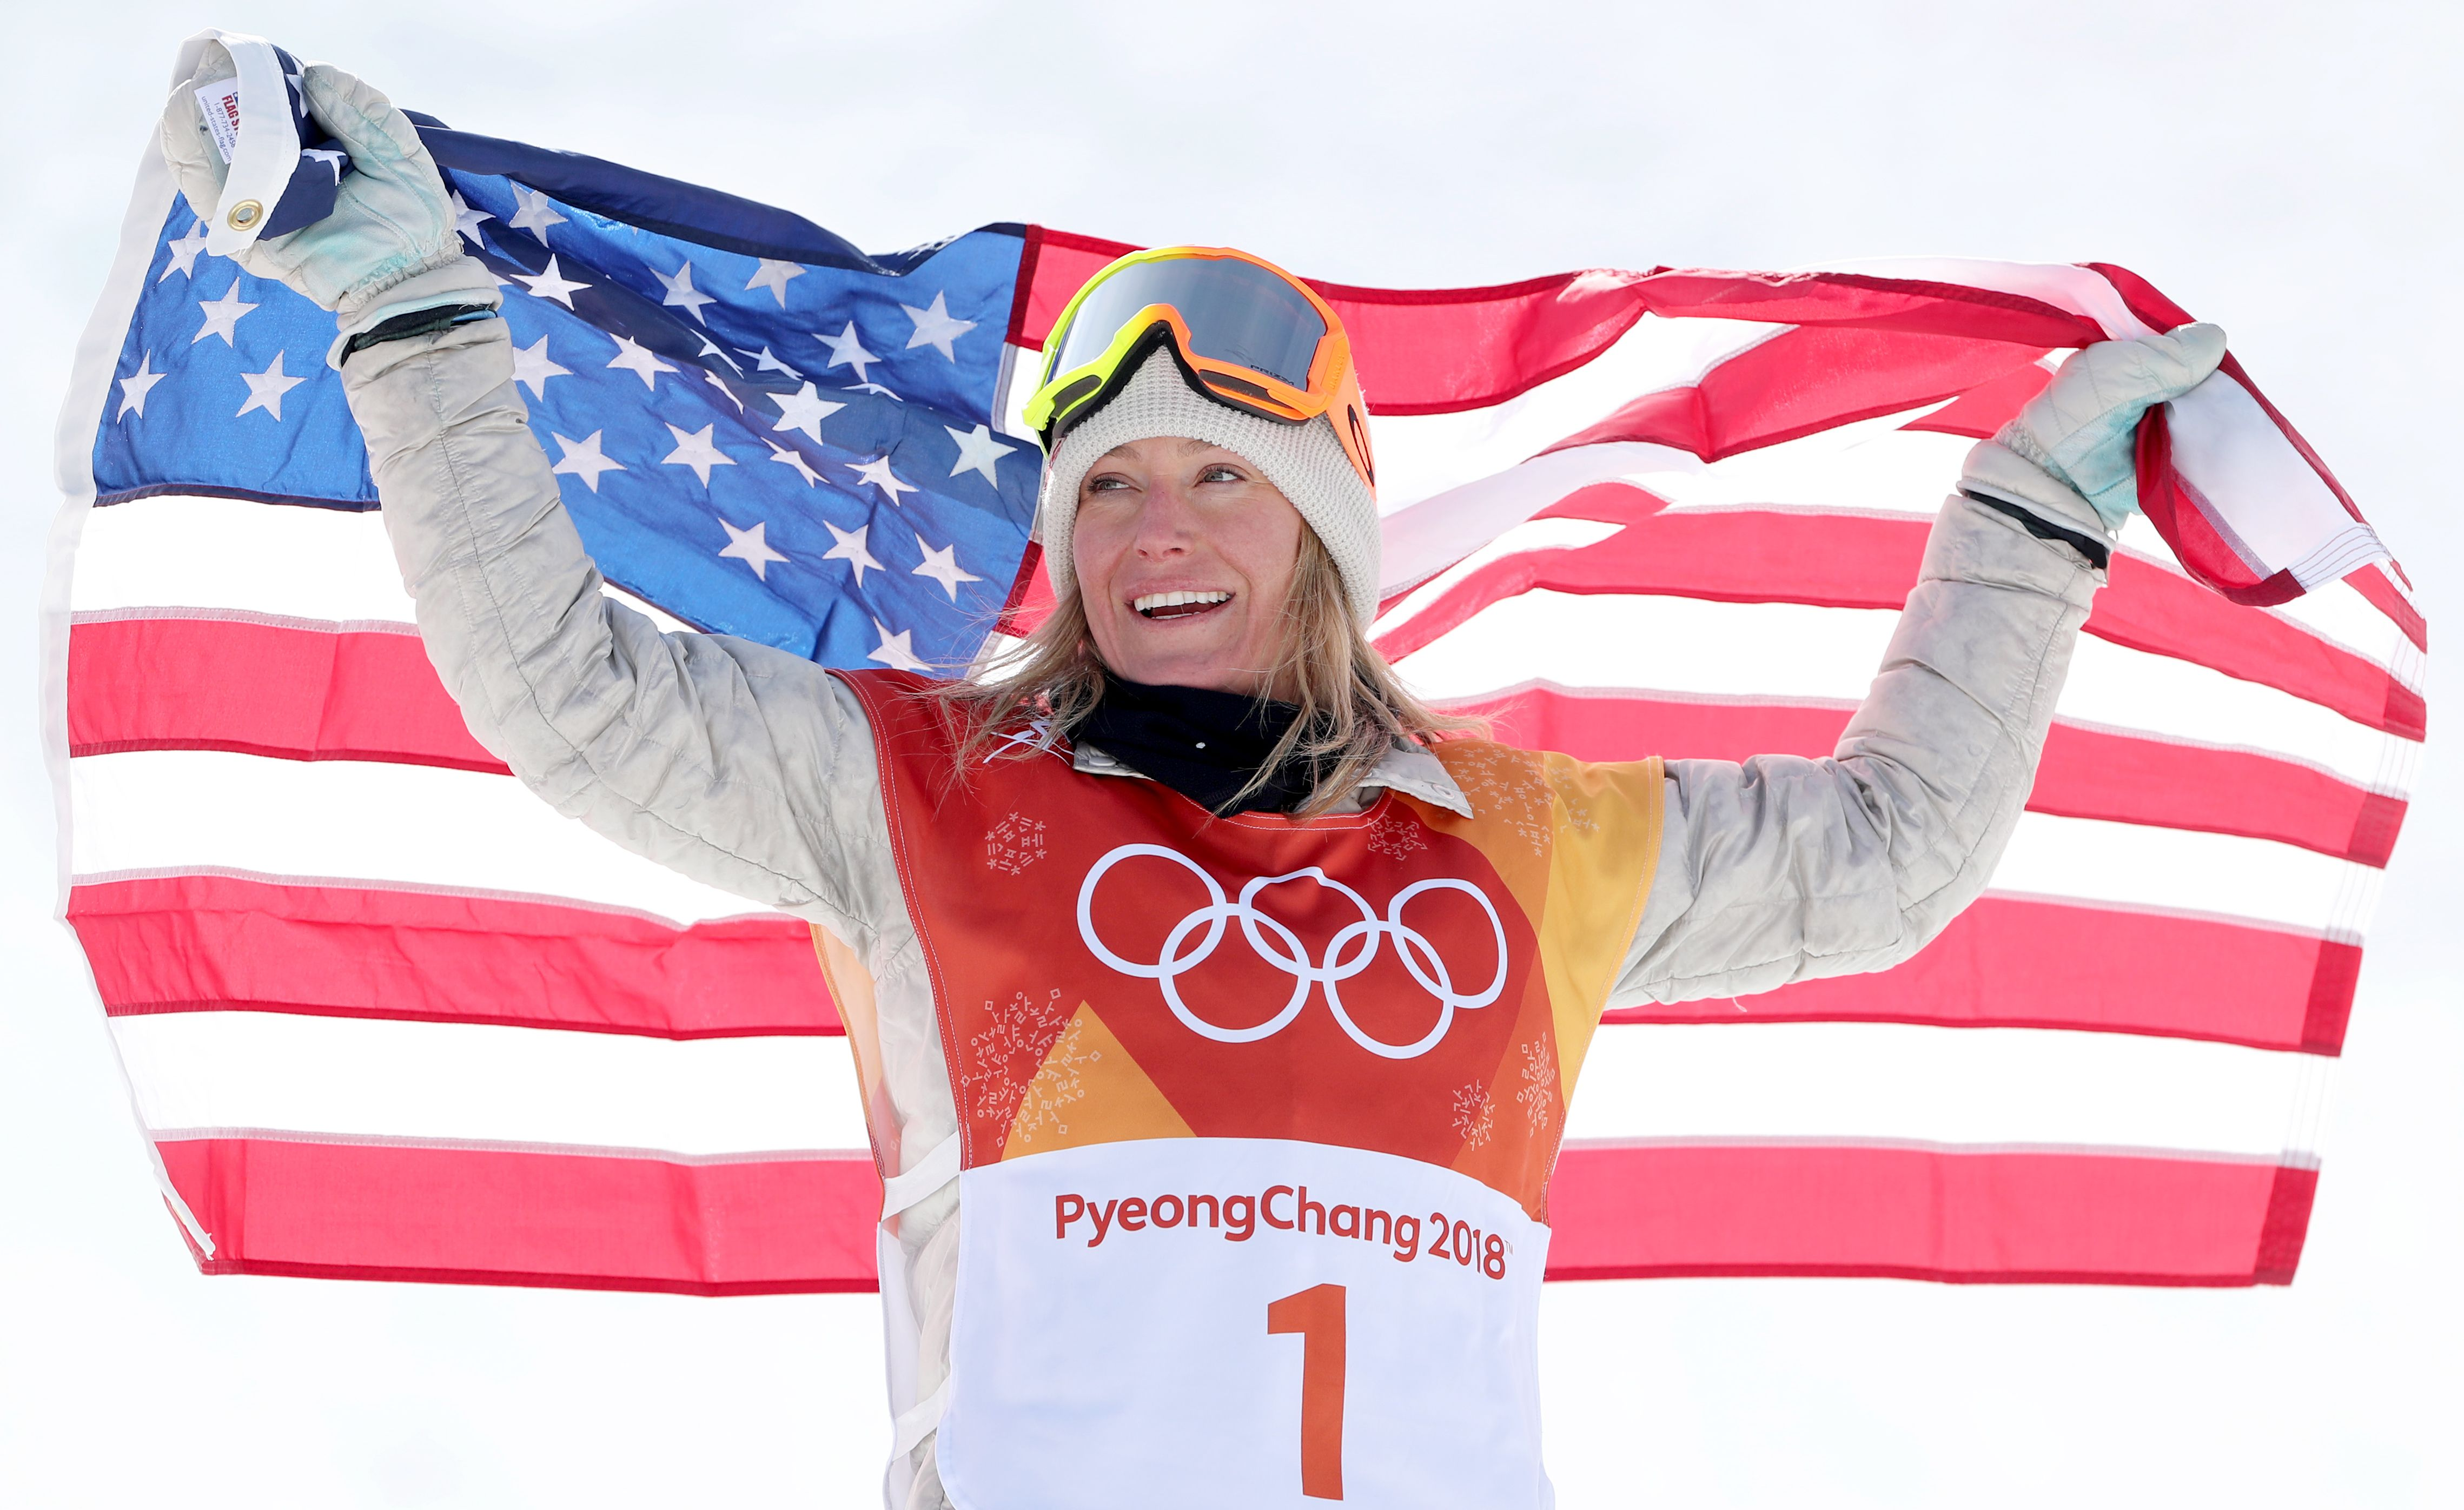 Jamie AndersonSnowboard - PyeongChang 2018 Olympic Games, Bongpyeong-Myeon, Korea - 12 Feb 2018Gold medal winner Jamie Anderson of the USA celebrates her win on the podium with the US flag after the Women's Snowboard Slopestyle Final Run at the Bokwang Phoenix Park during the PyeongChang 2018 Olympic Games, South Korea, 12 February 2018.